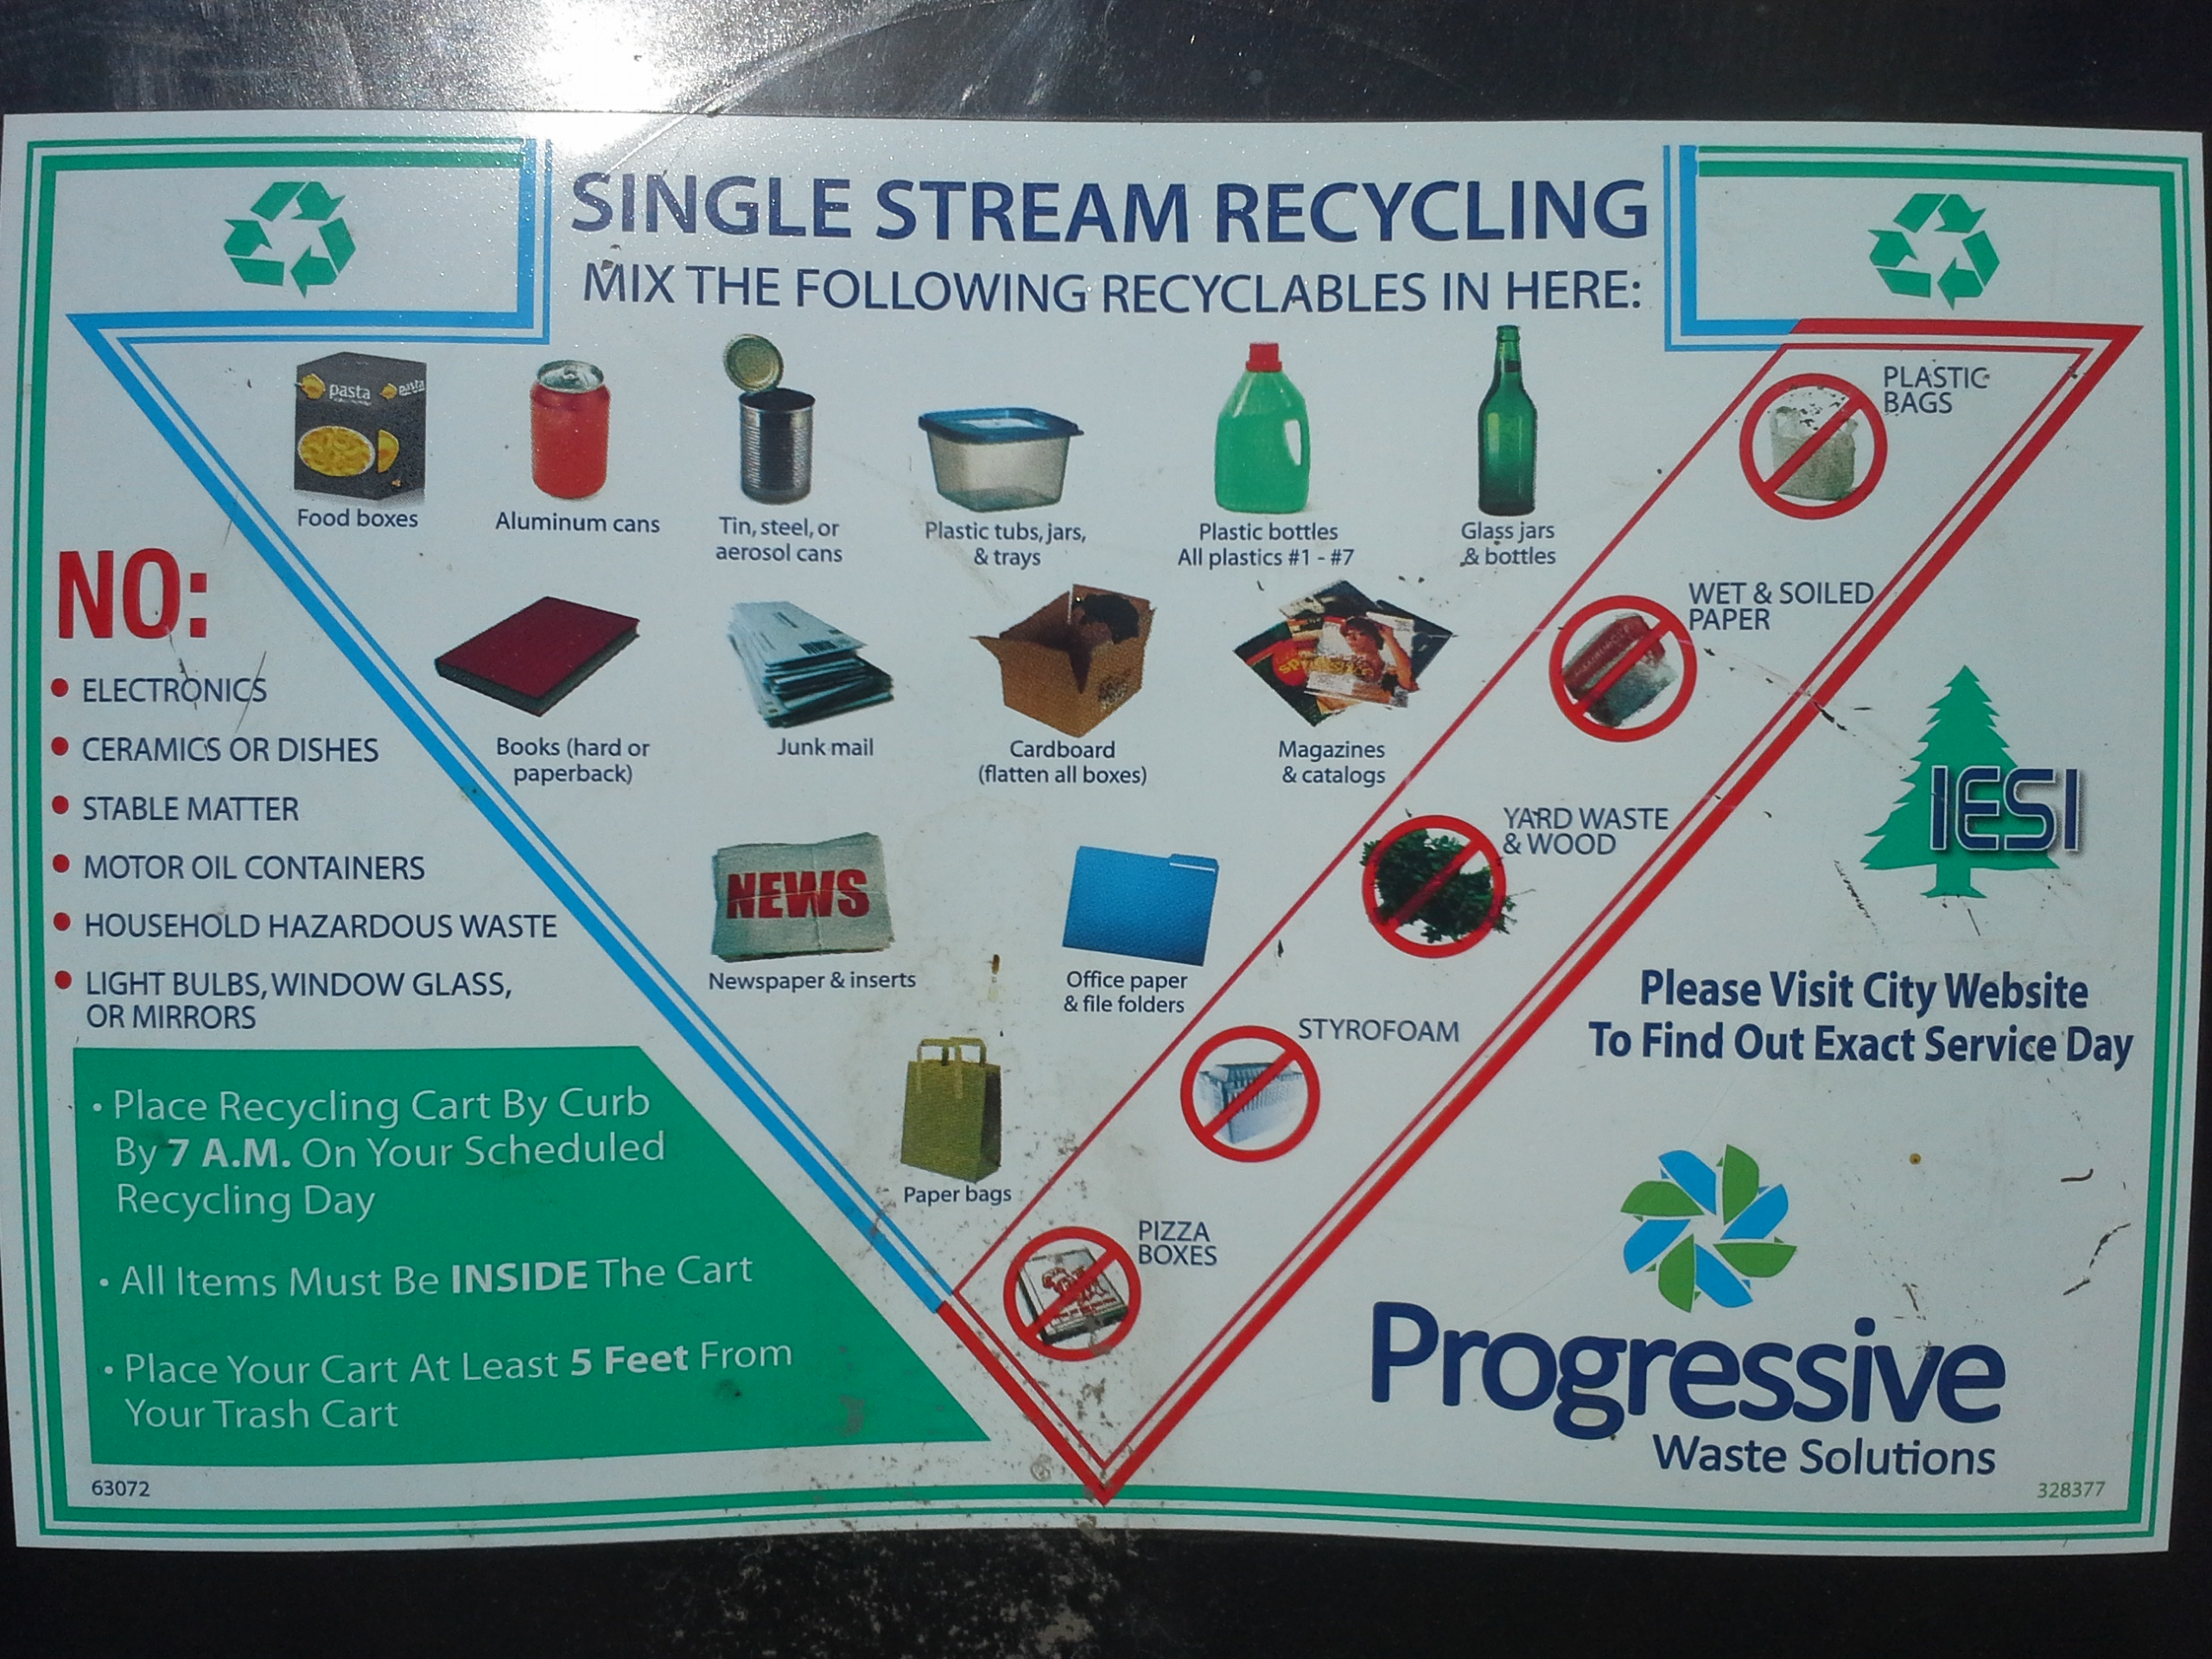 Information on recycling, including items that can and cannot be recycled